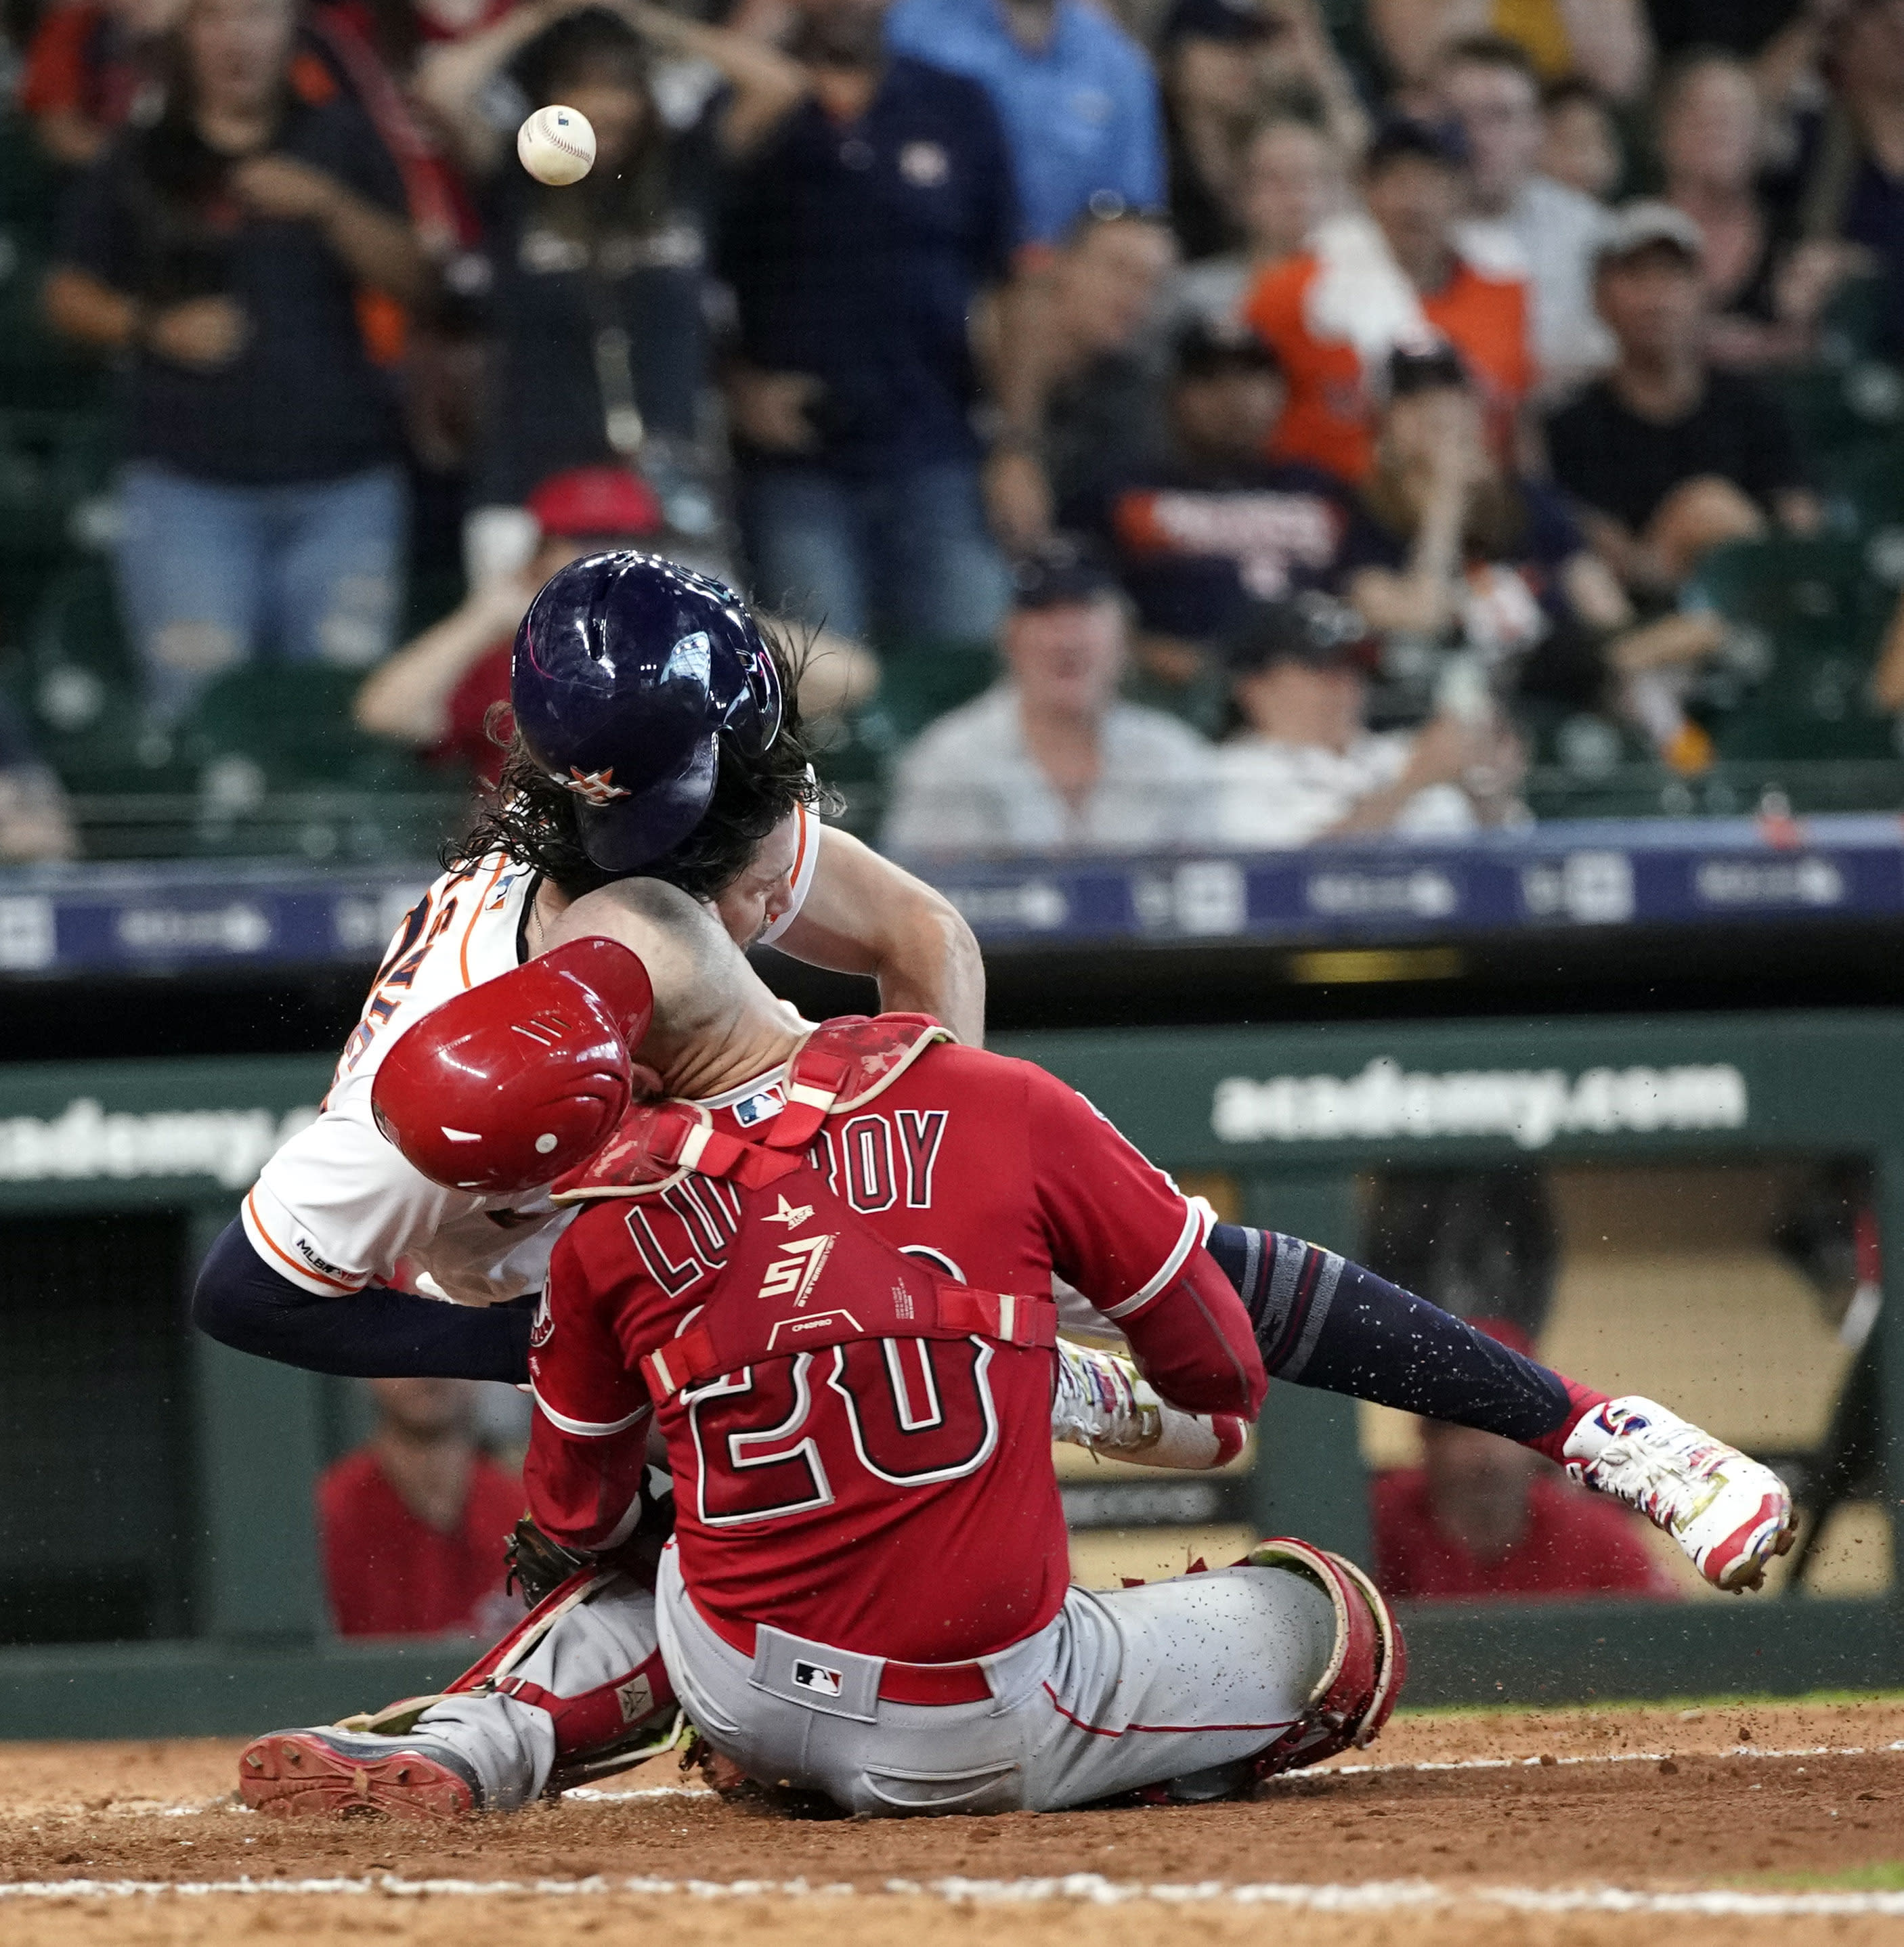 Astros' Marisnick suspended for collision that put Angels' Lucroy in hospital